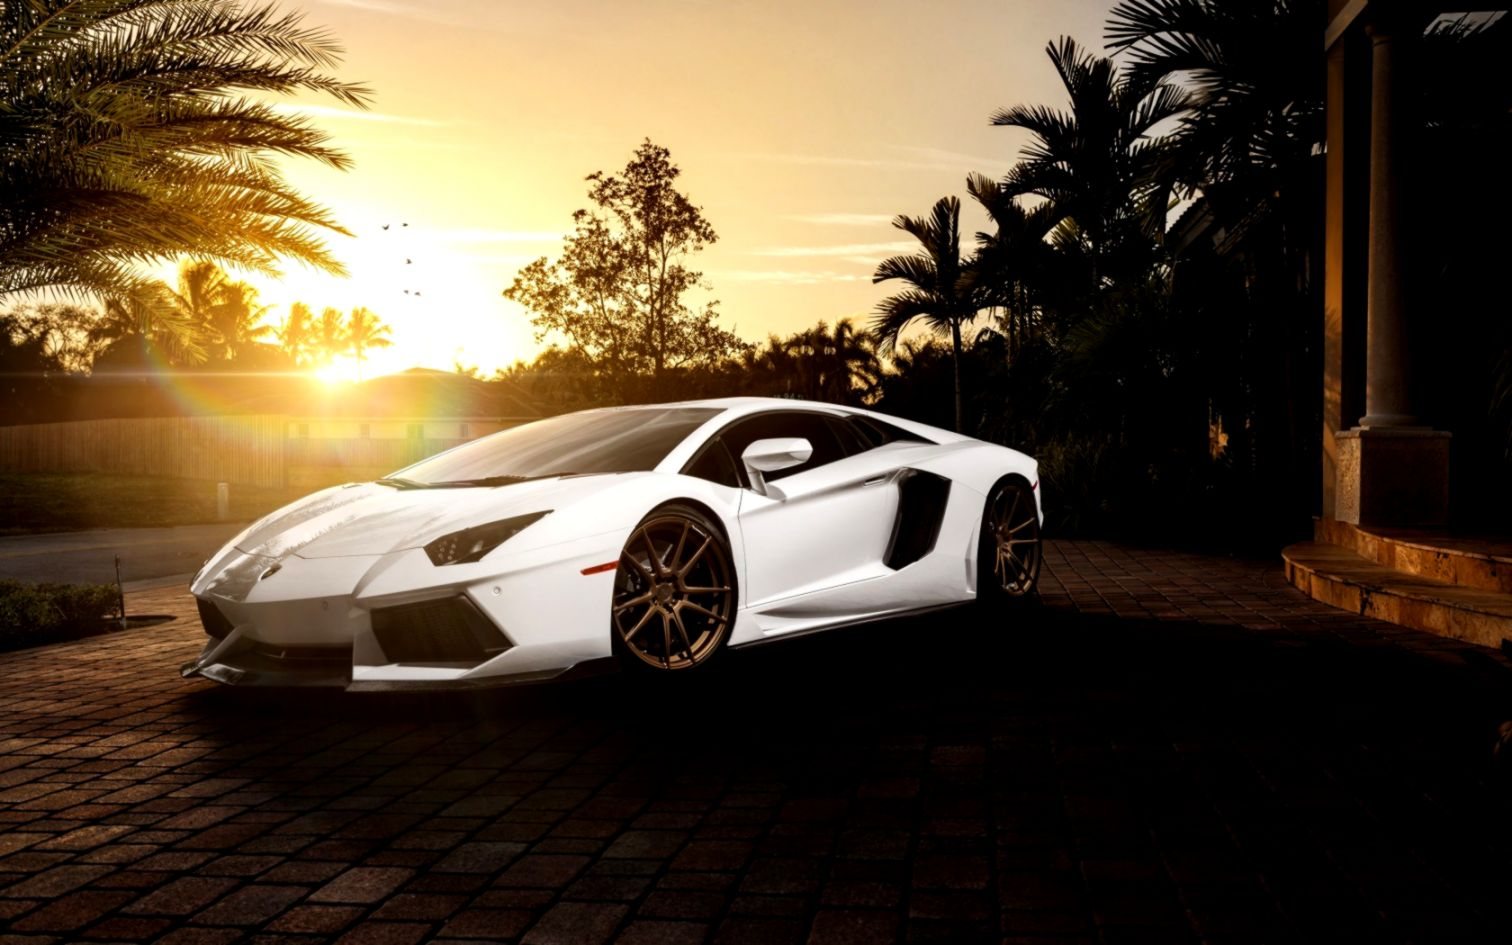 Lamborghini Aventador HD Wallpaper and Images New Wallpapers